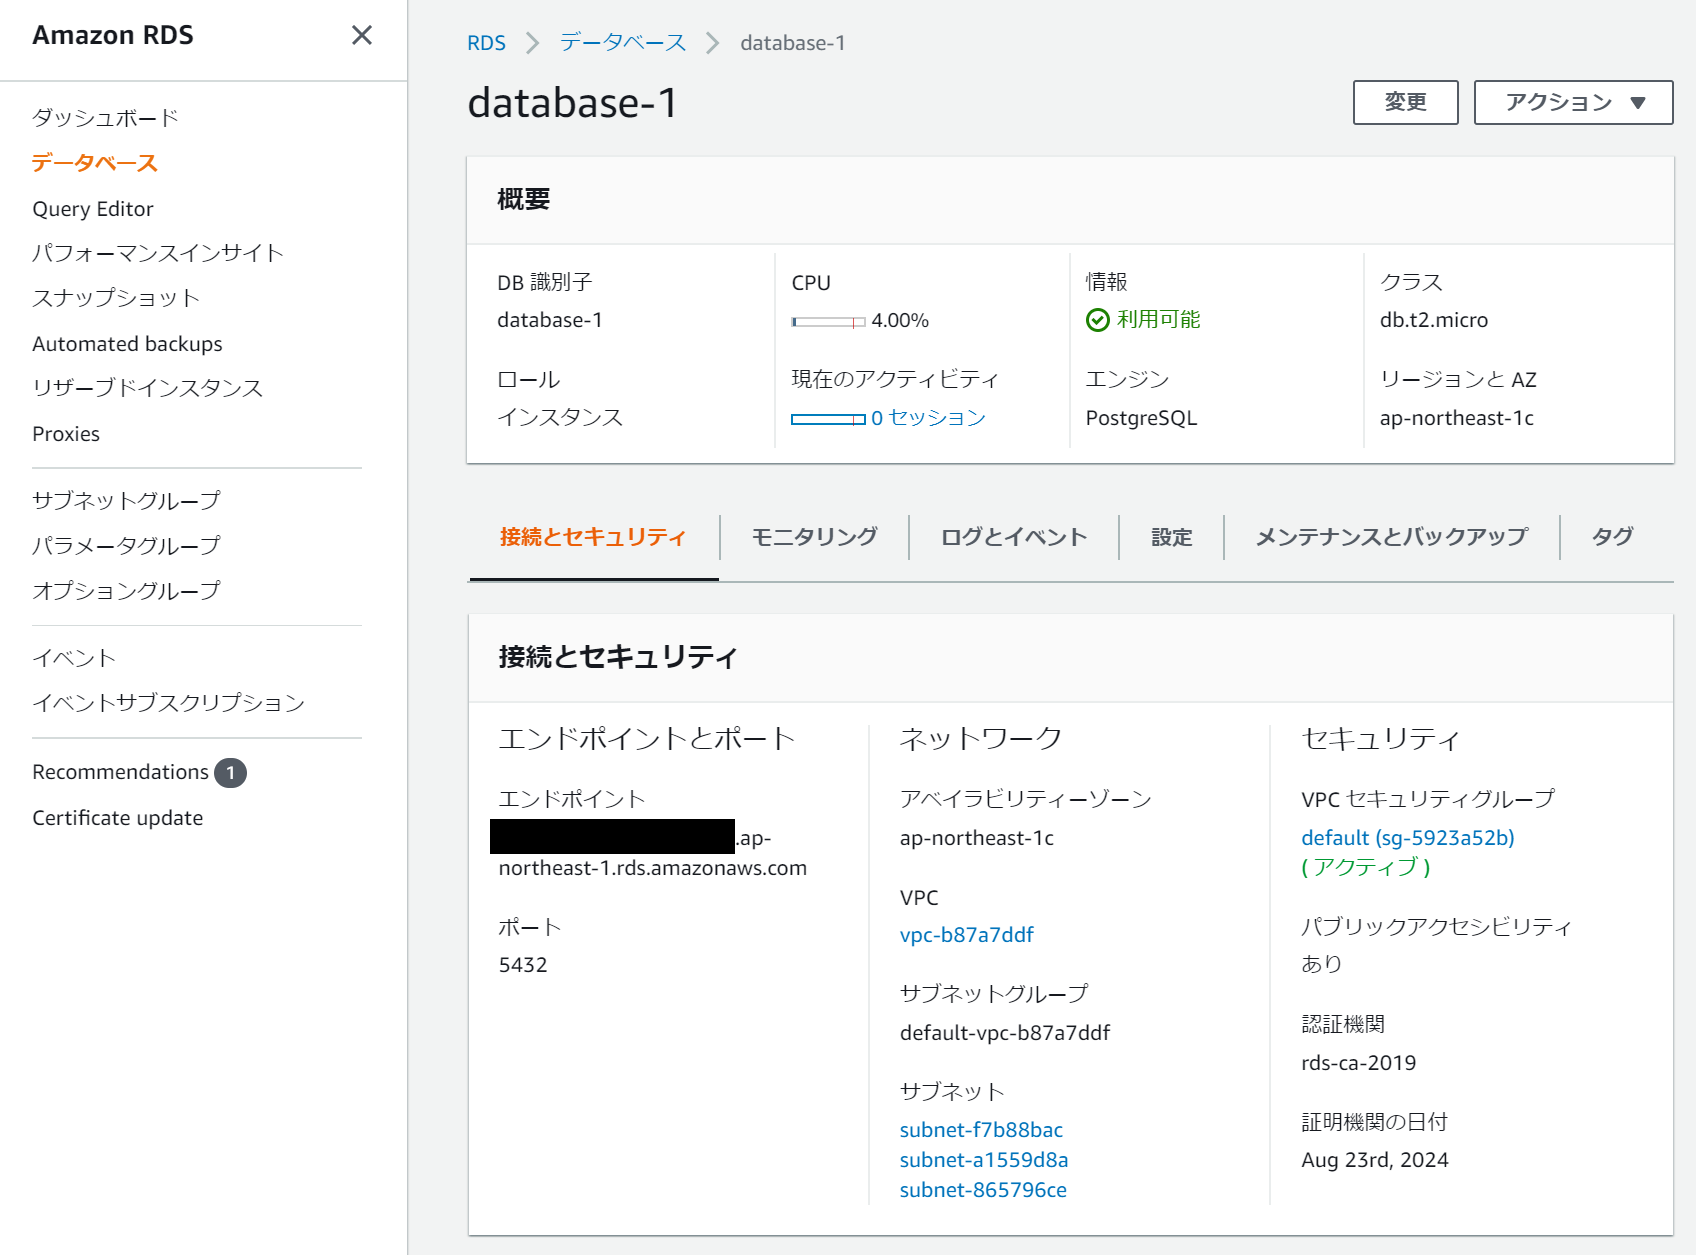 aws-rds-11.png